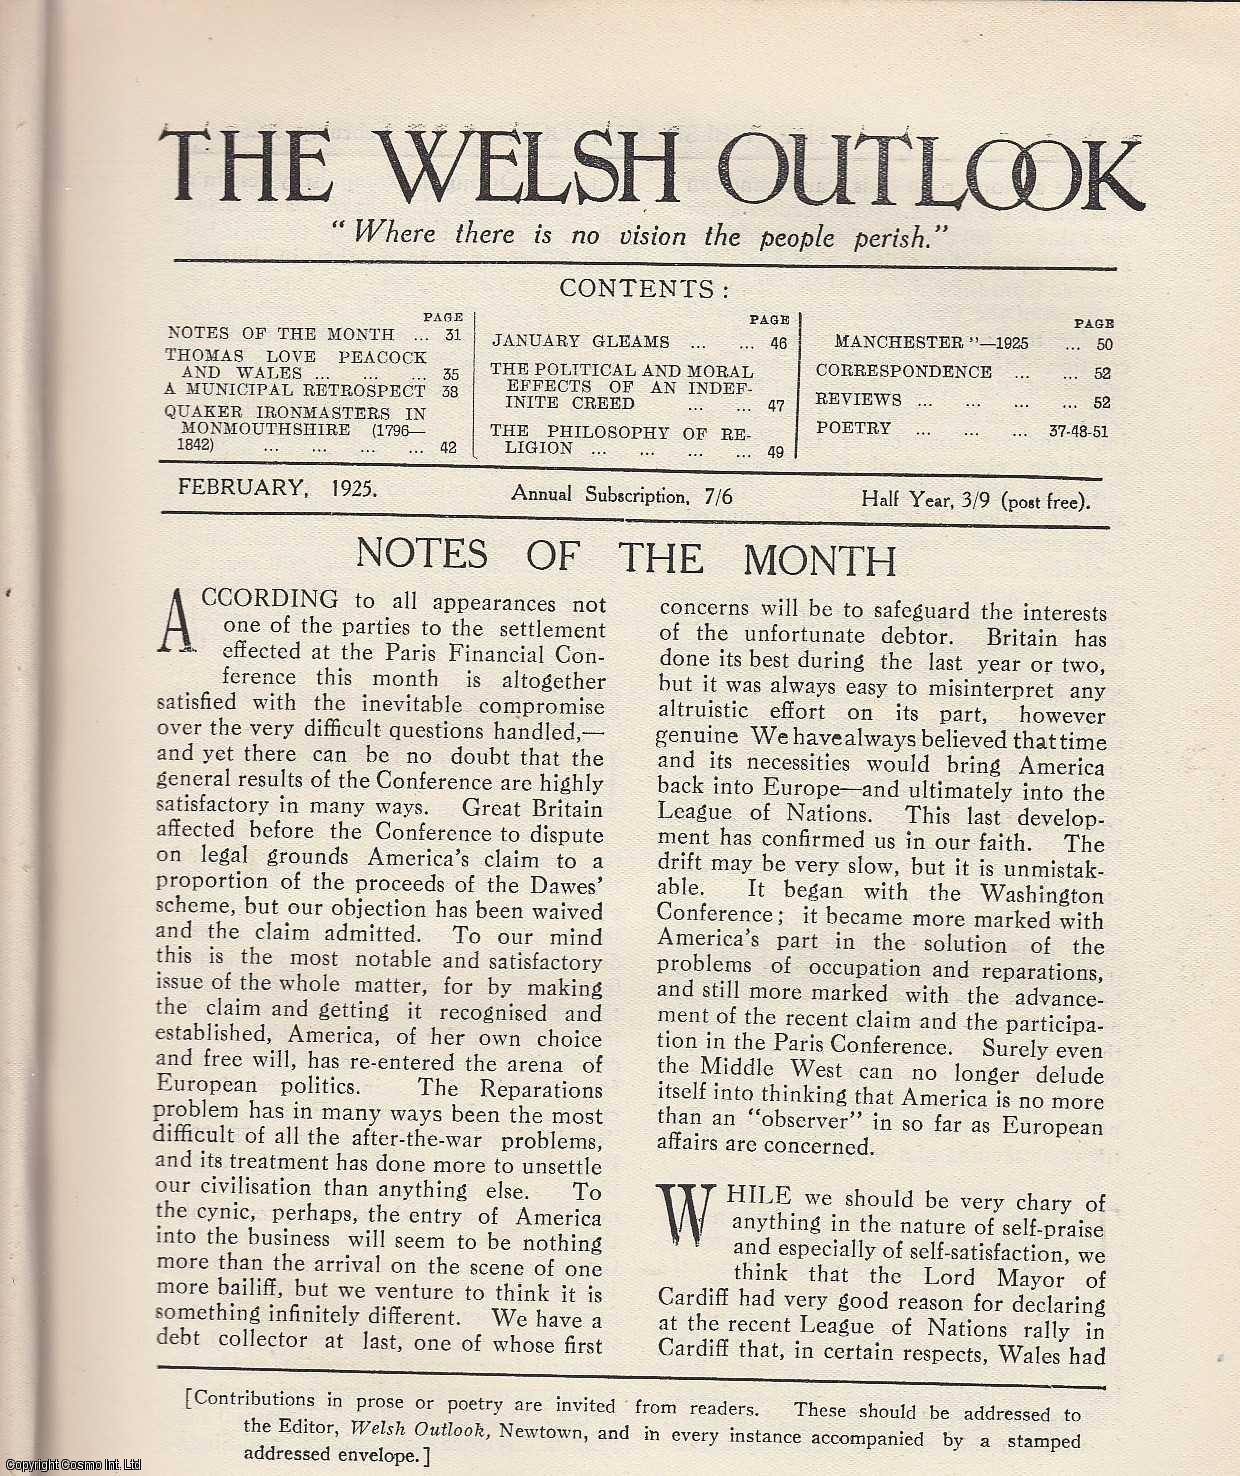 The Welsh Outlook. A Monthly Journal of National Social Progress. February, 1925. Contains; Thomas Love Peacock and Wales by Professor H. Wright; A Municipal Retrospect by Cecil G. Brown; Quaker Ironmasters in Monmouthshire (1796-1842) by A. Gray Jones; The Political and Moral Effects of an Indefinite Creed: A Reply to Dr. E.E. Thomas by J. Arthur Price; The Philosophy of Religion by Rev. Dr. E.E. Thomas; Manchester - 1925: Students of The World in Conference by Owen Griffith., Thomas Jones (Editor)